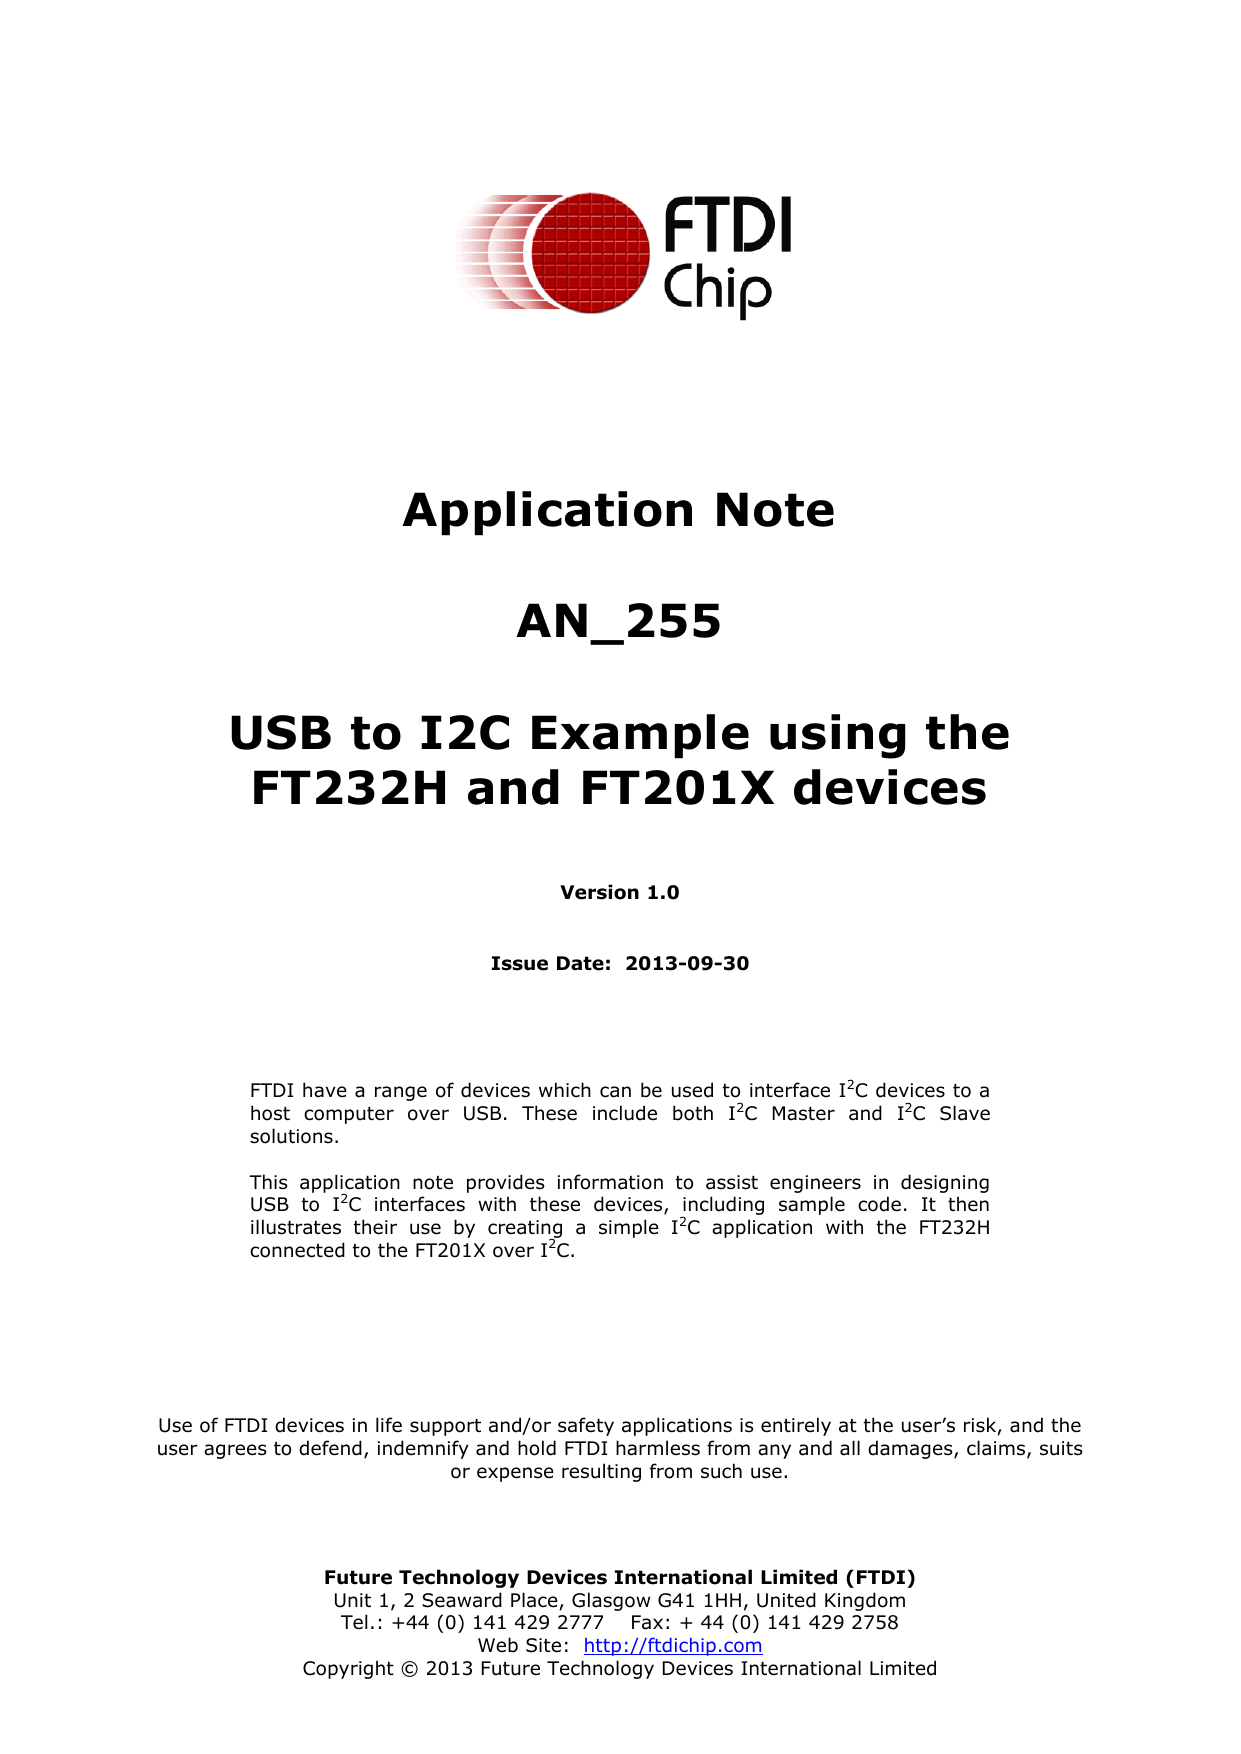 USB to I2C Example using the FT232H and FT201X devices